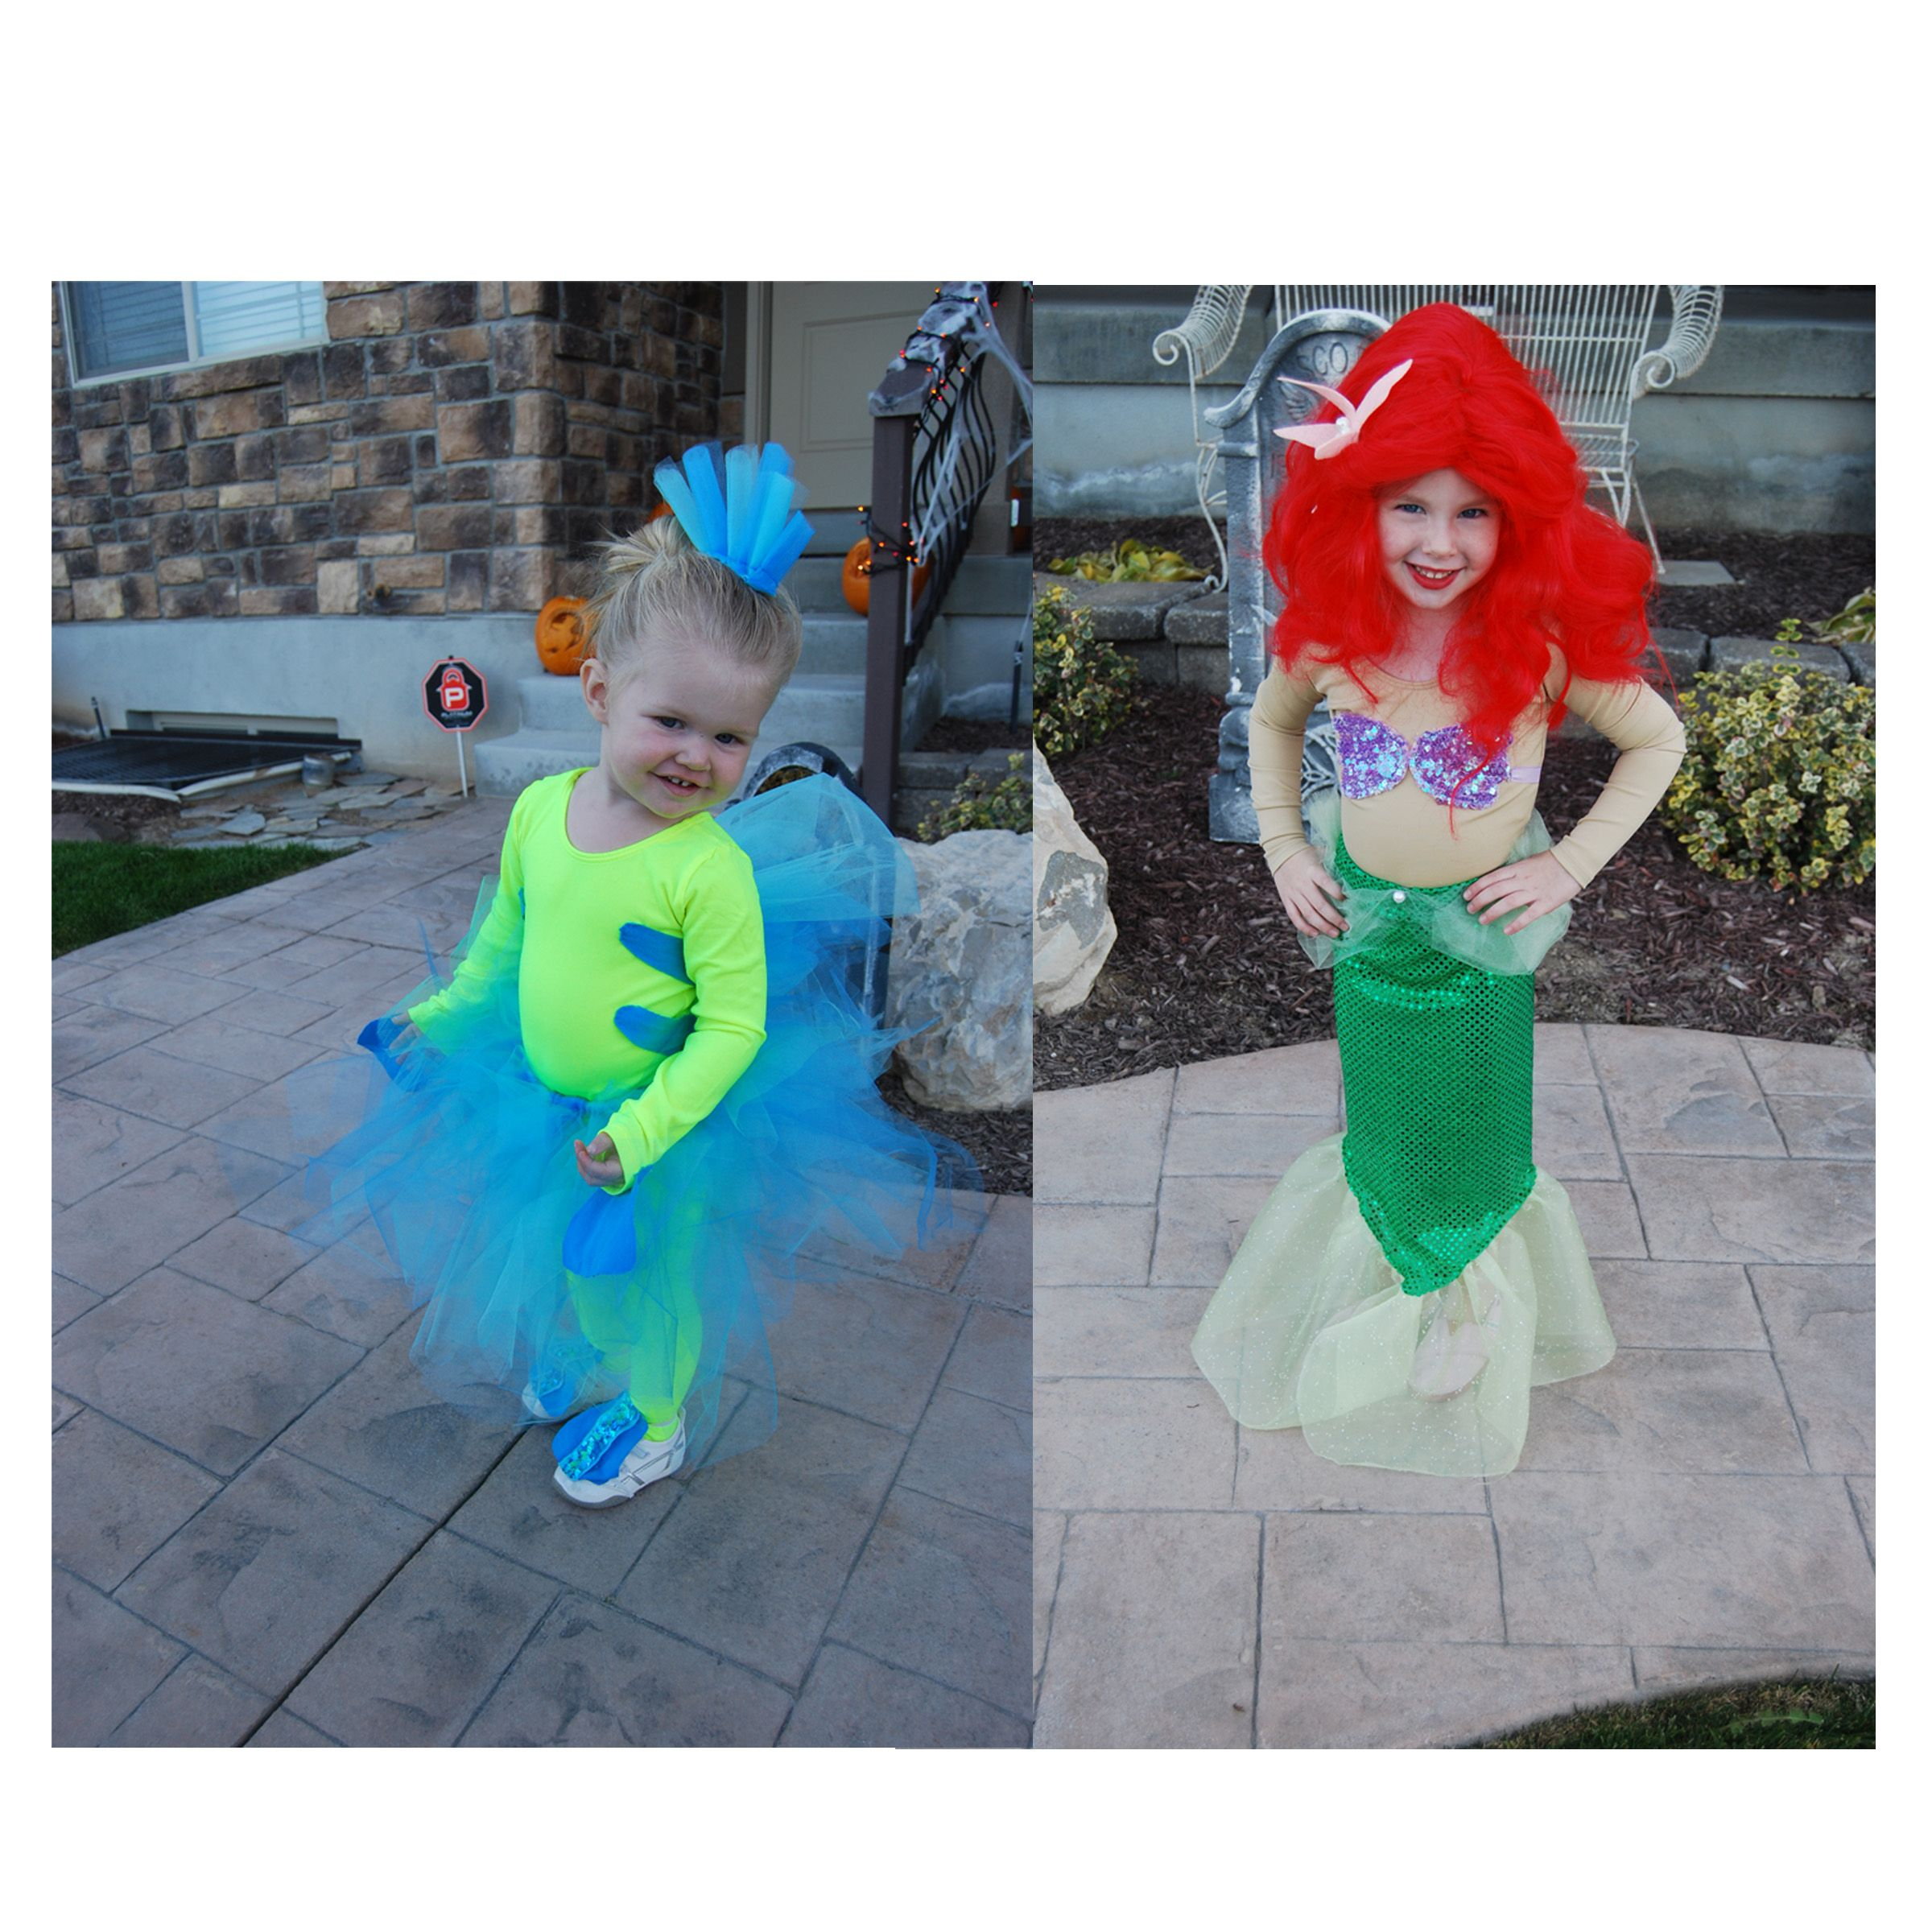 Ariel diy costume full diy mermaid costume post - Flounder And Ariel Homemade Costumes So Cute Really Like The Headpiece For Flounder